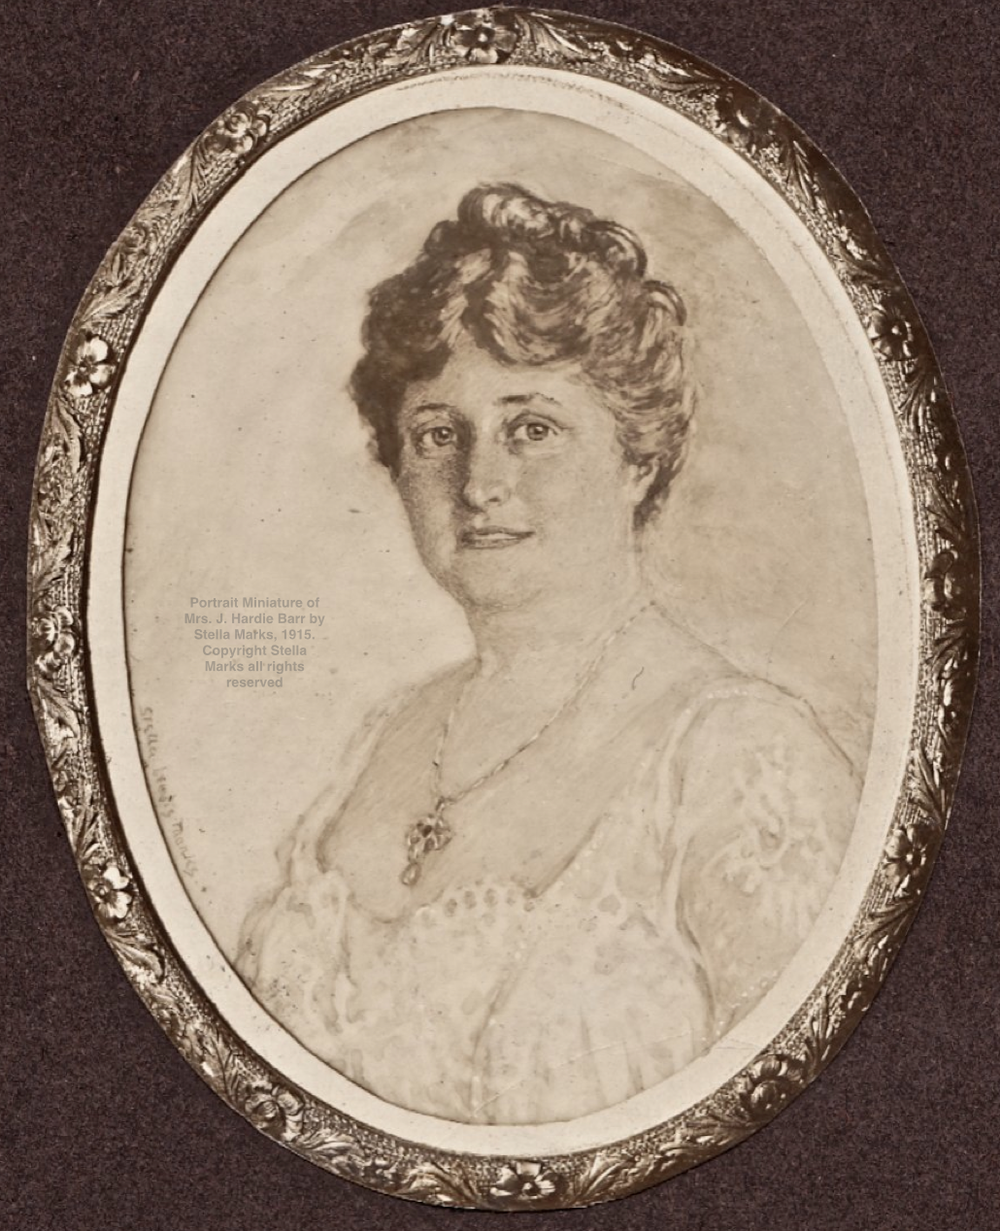 After A Portrait Miniature of Mrs. J. Hardie Barr by Stella Marks, 1915. Copyright Stella Marks all rights reserved